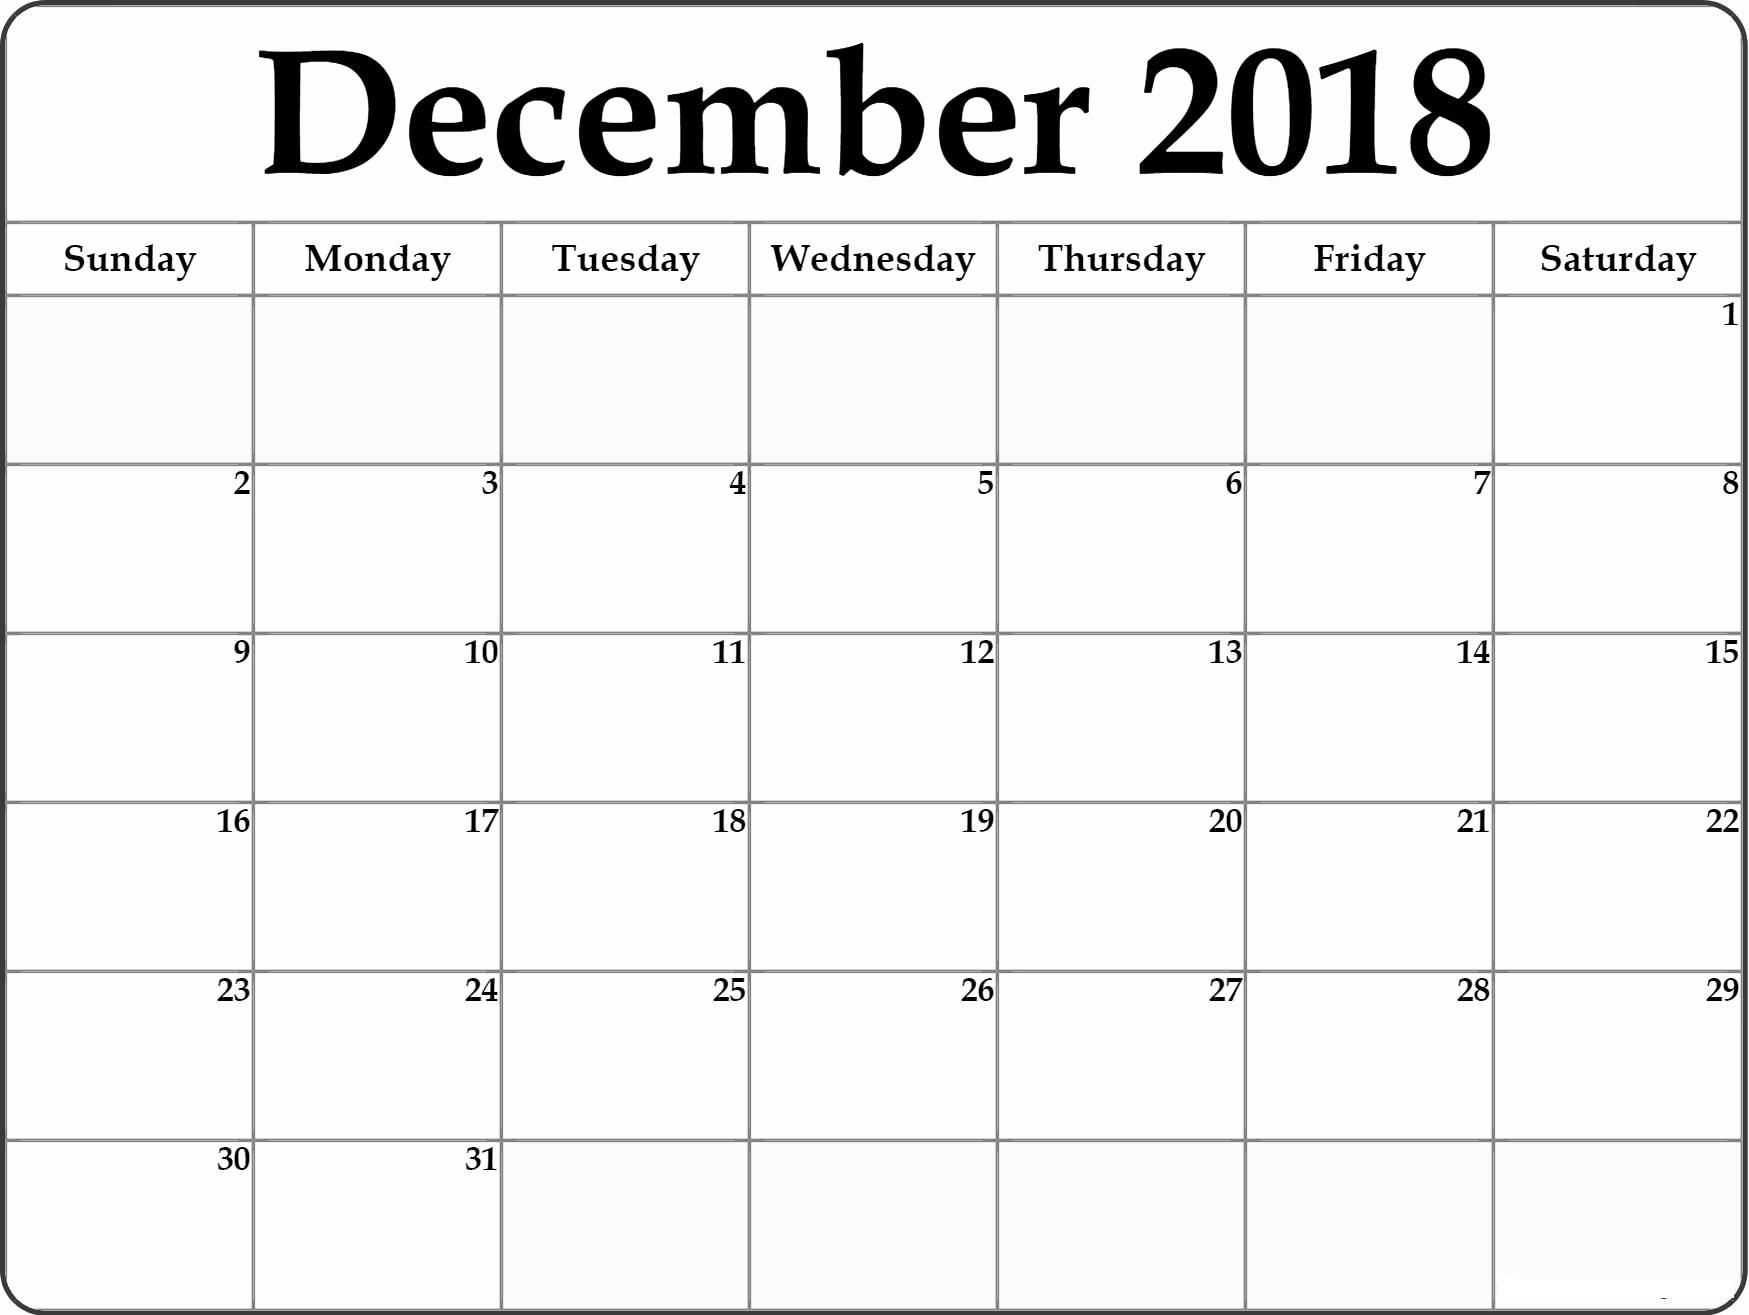 December 2018 Printable Calendar By Month | 2018 December